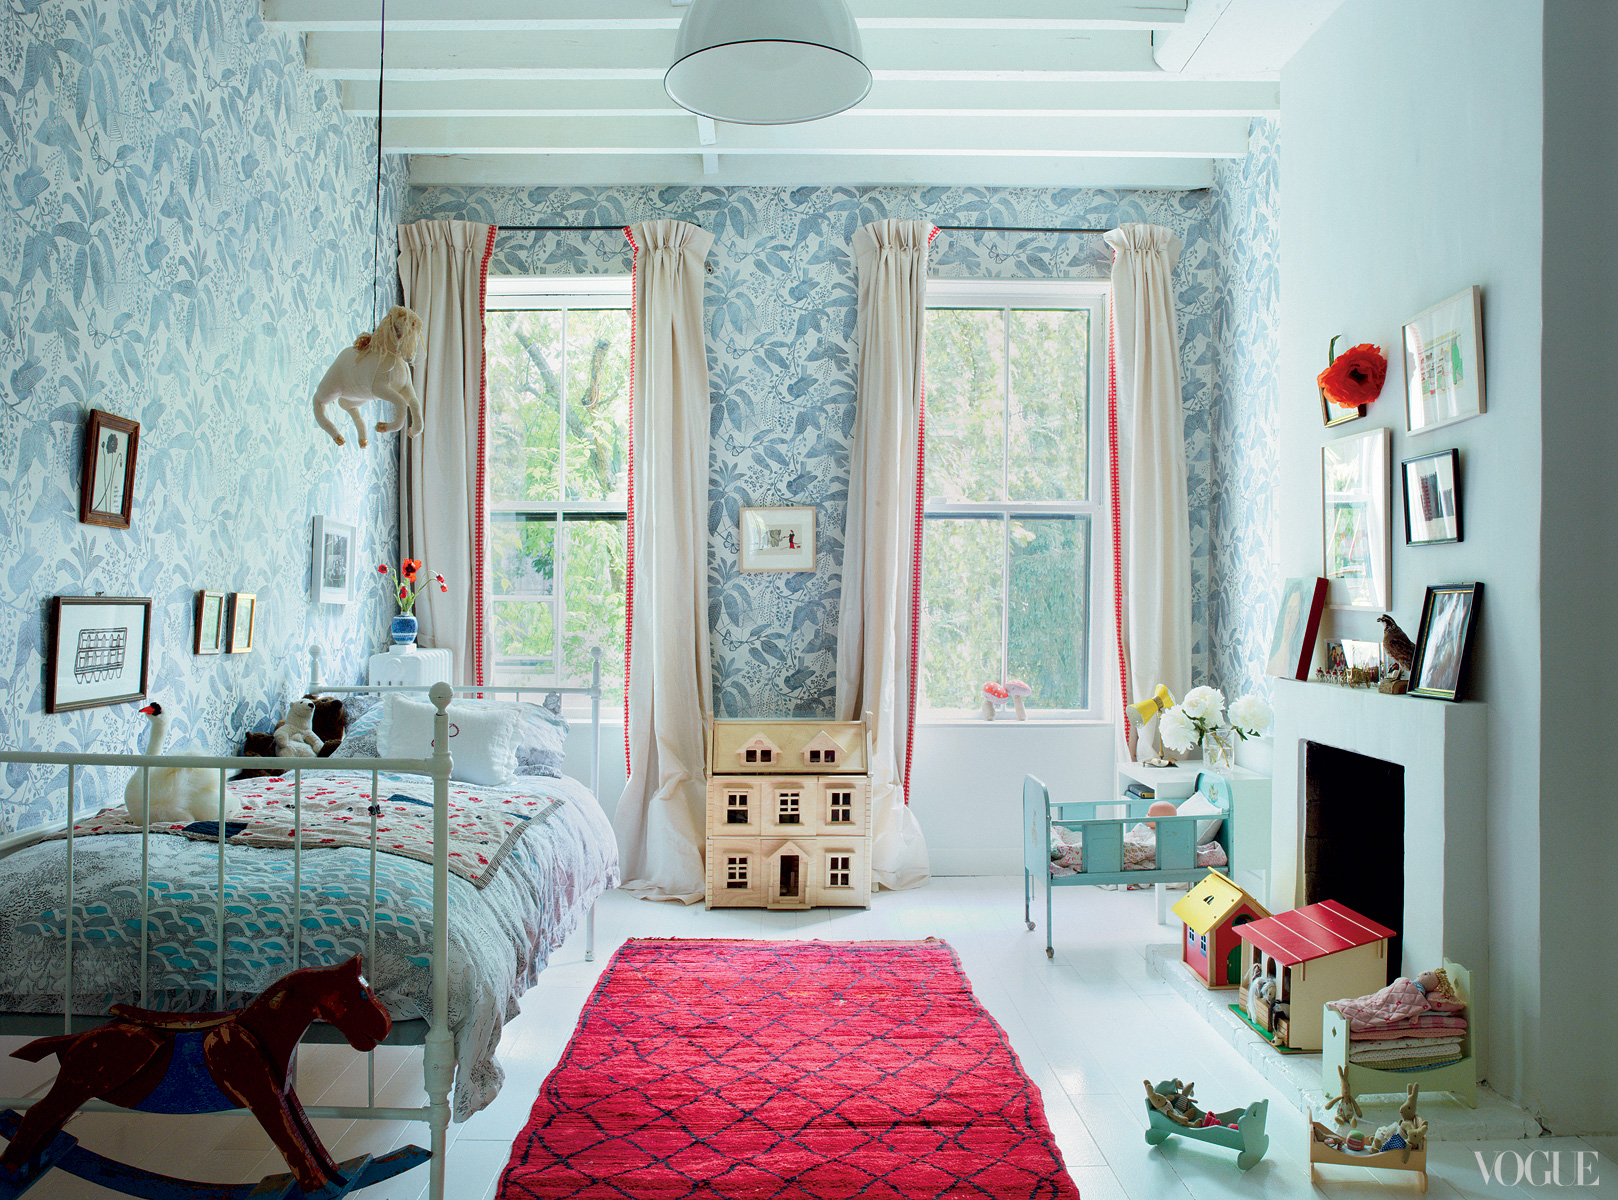 Brooklyn apartment of Miranda Brooks and Bastien Halard, Vogue Jan 2013, photo by Francois Halard